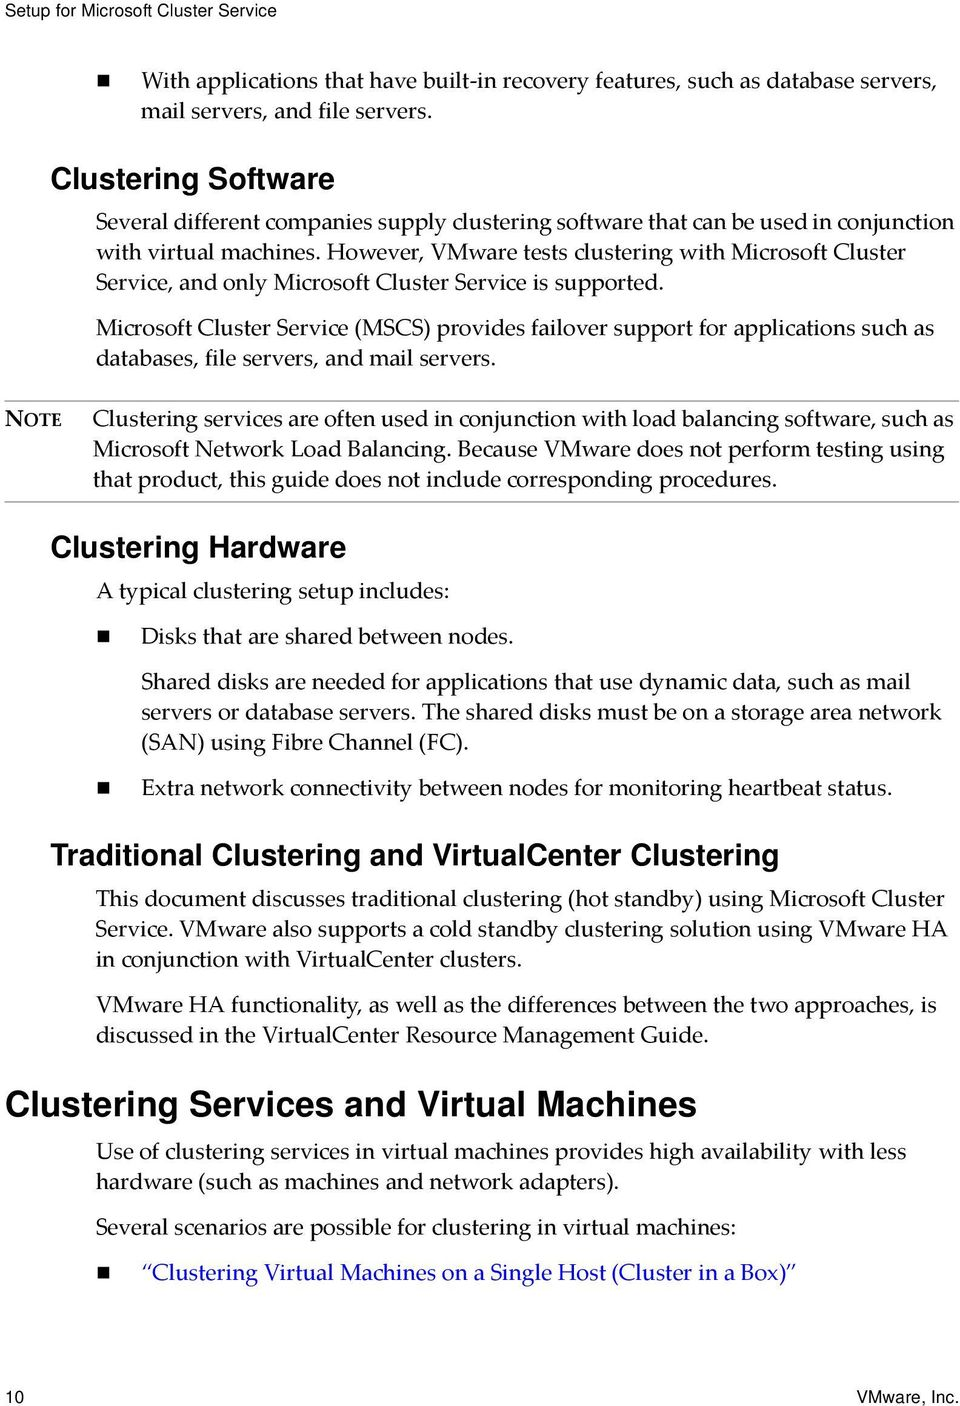 However, VMware tests clustering with Microsoft Cluster Service, and only Microsoft Cluster Service is supported.